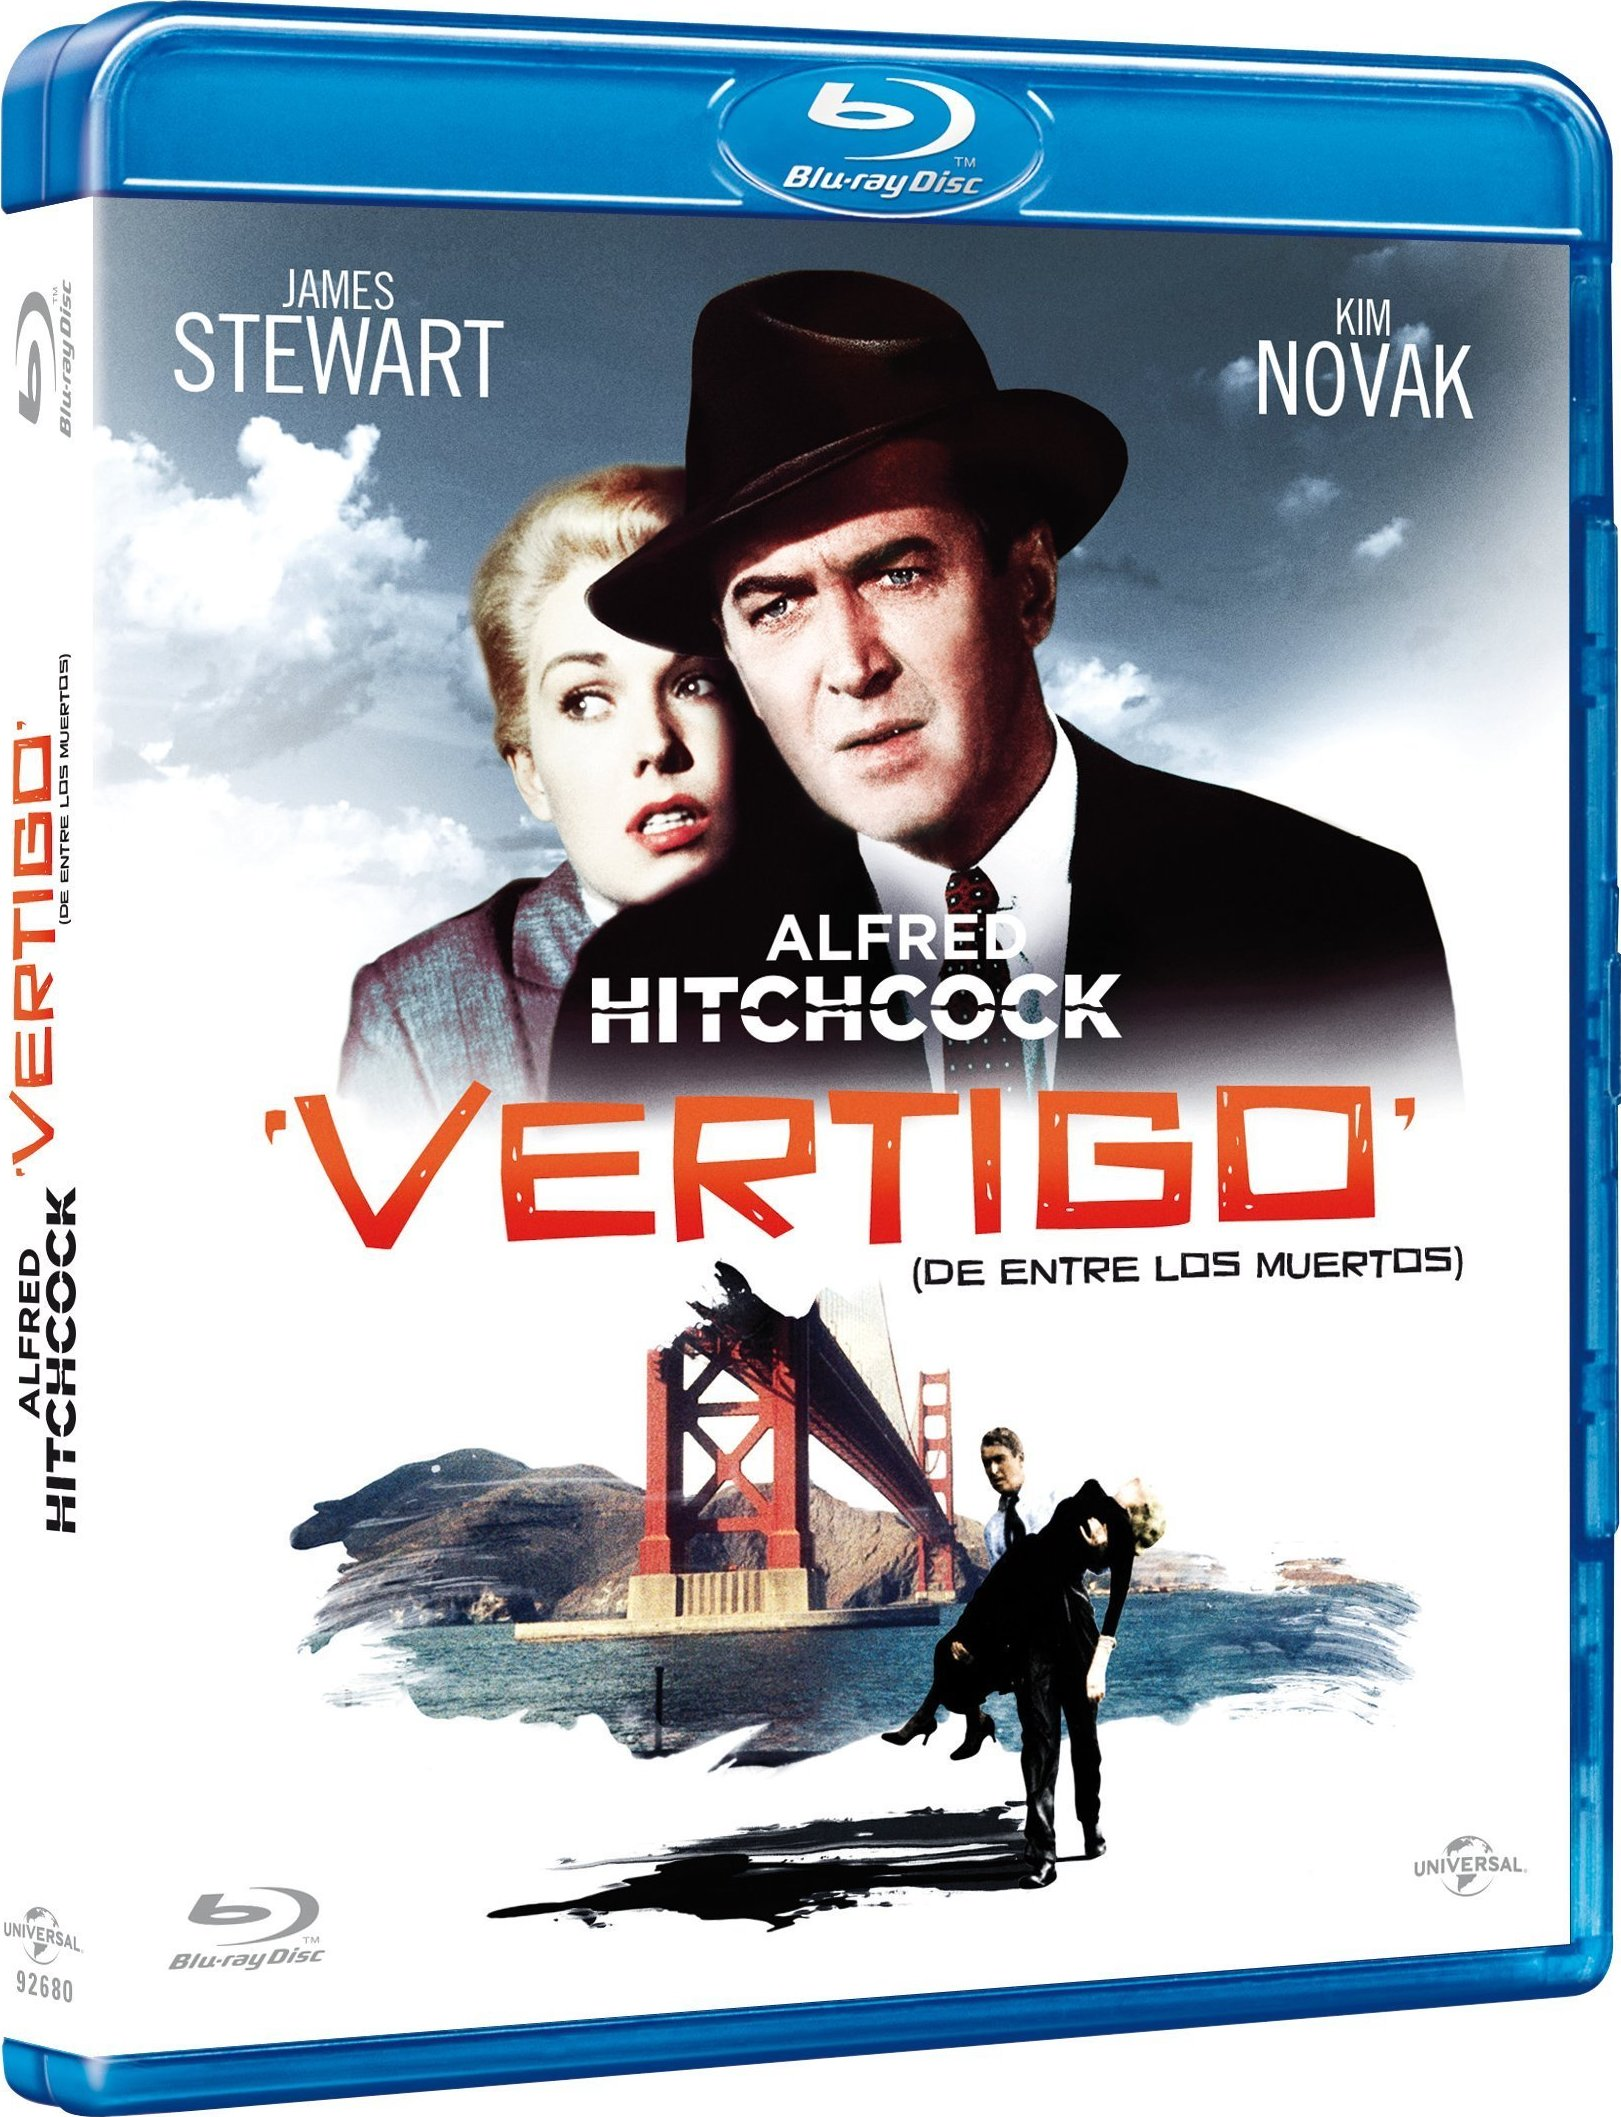 Vertigo 1958 Hindi Dual Audio 1080p BluRay ESubs 1.9GB